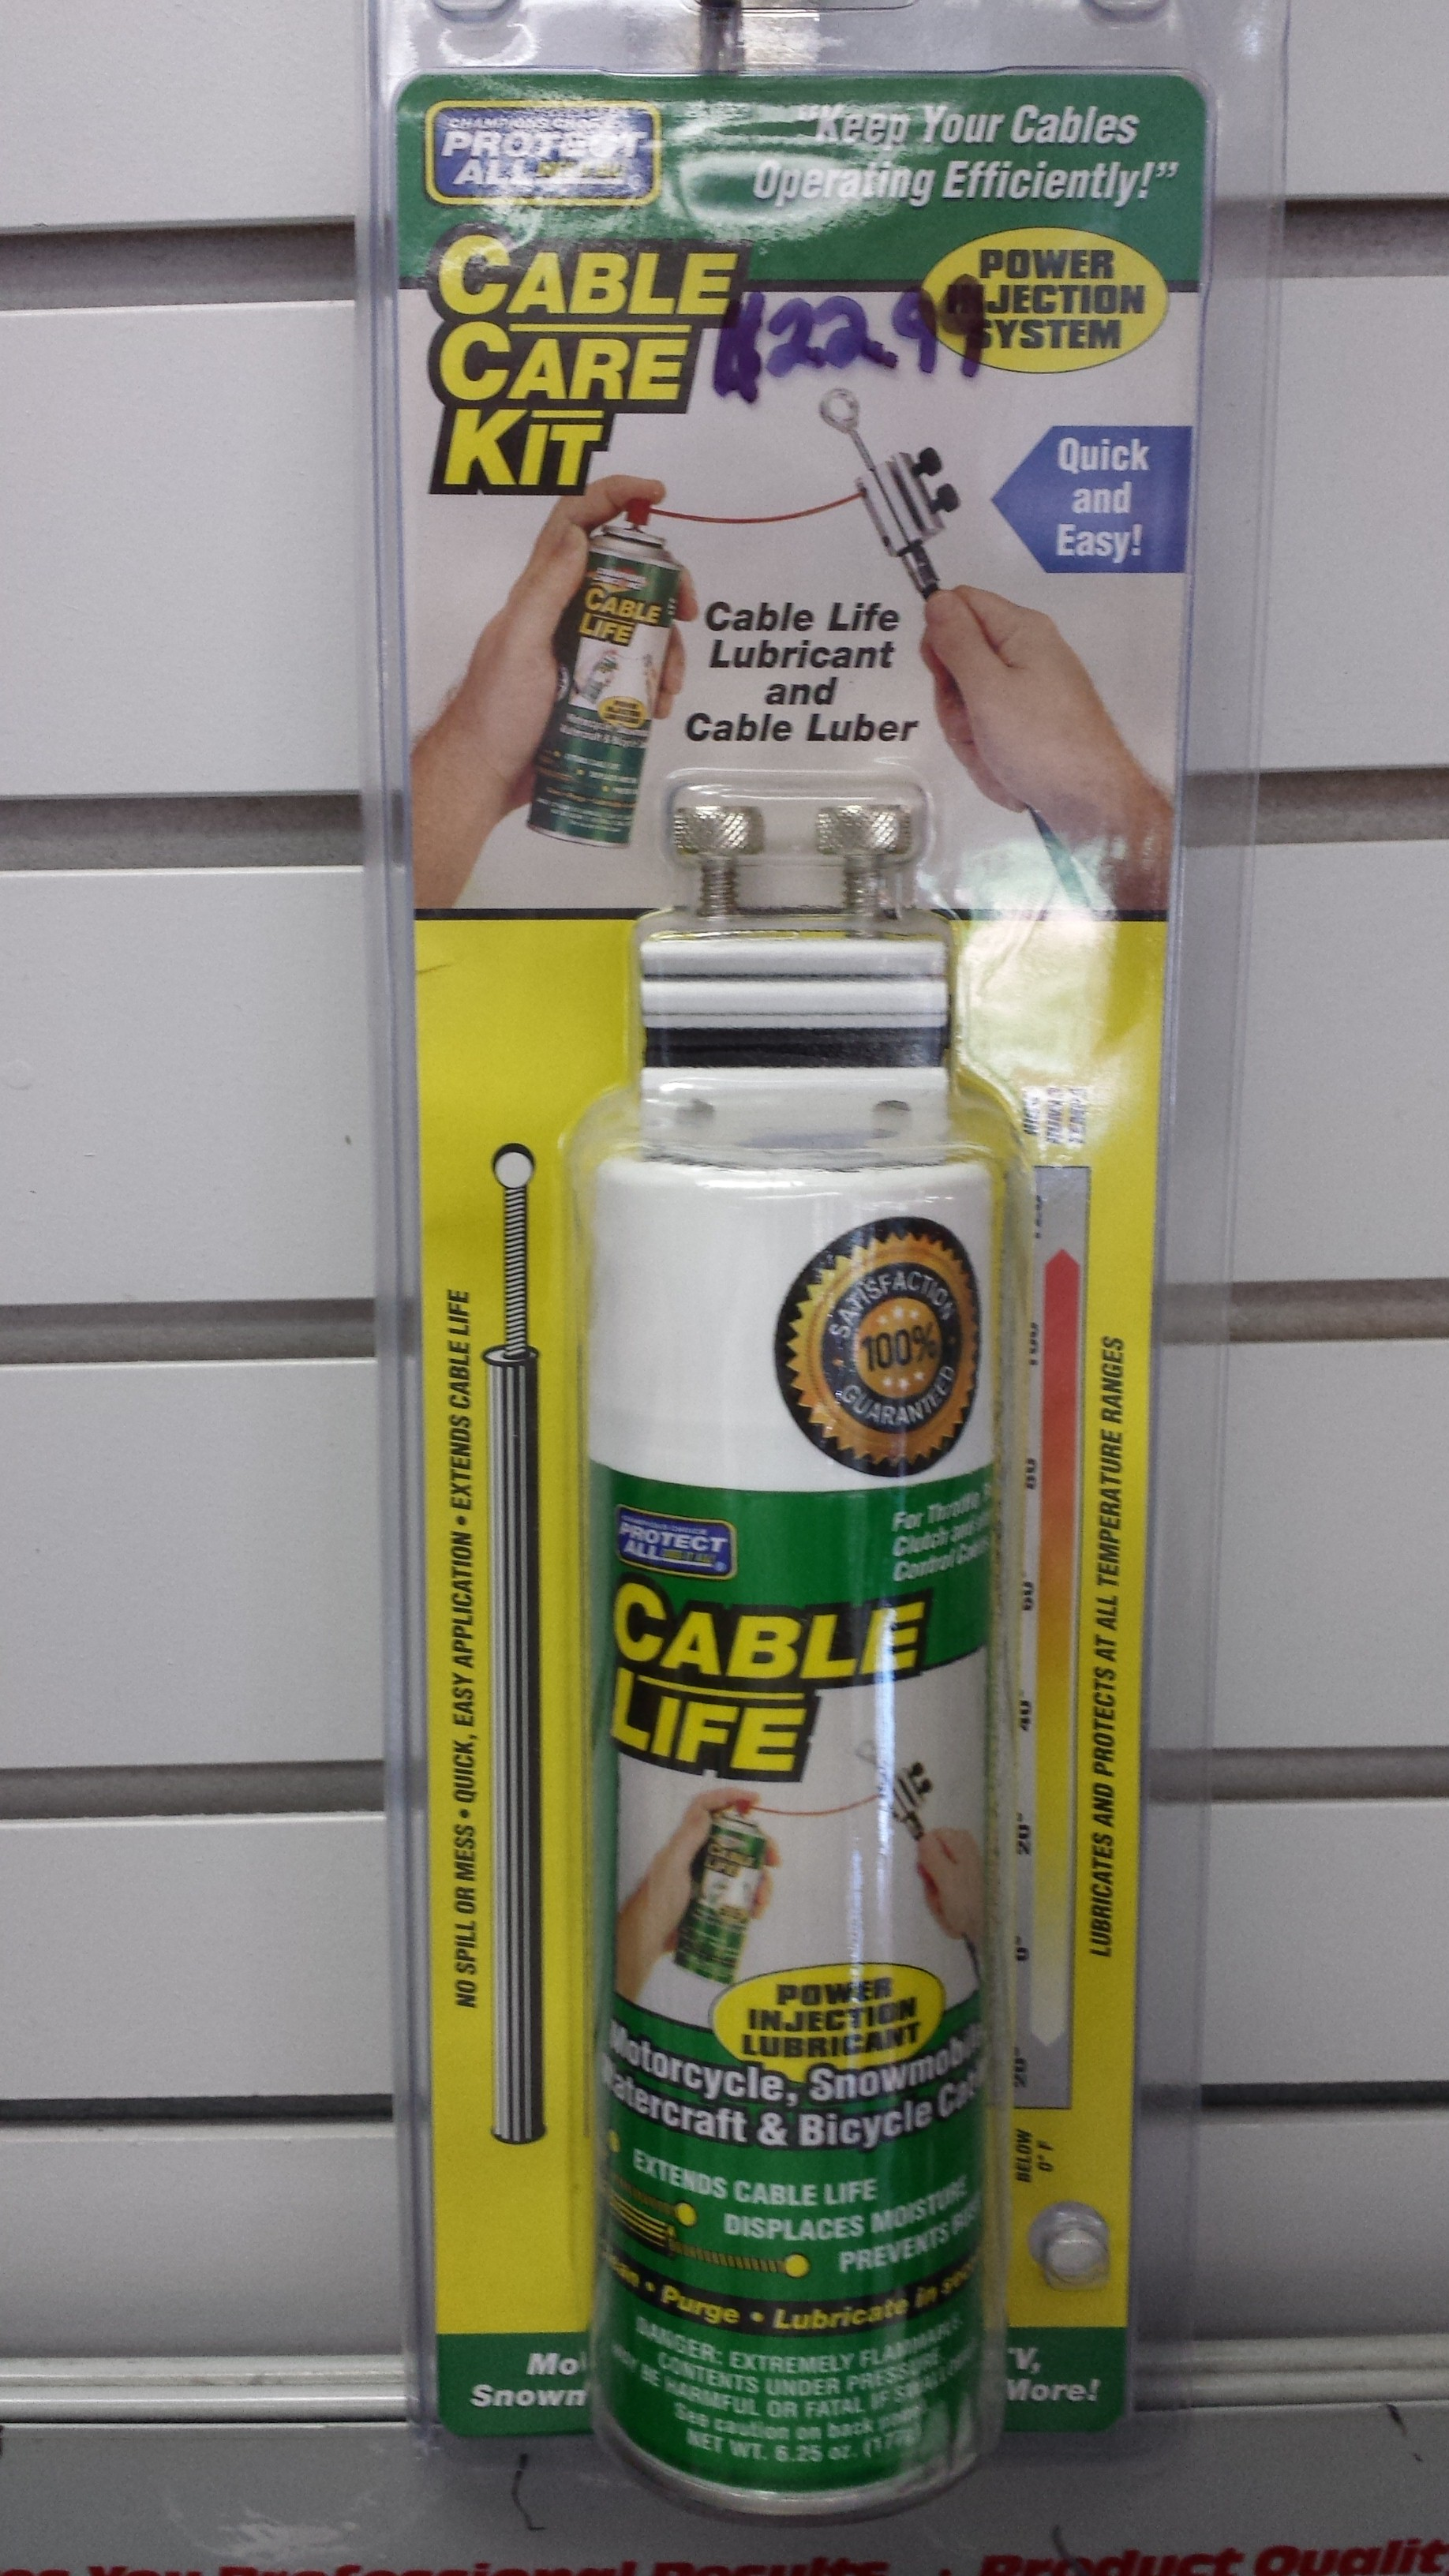 Cable Life Kit